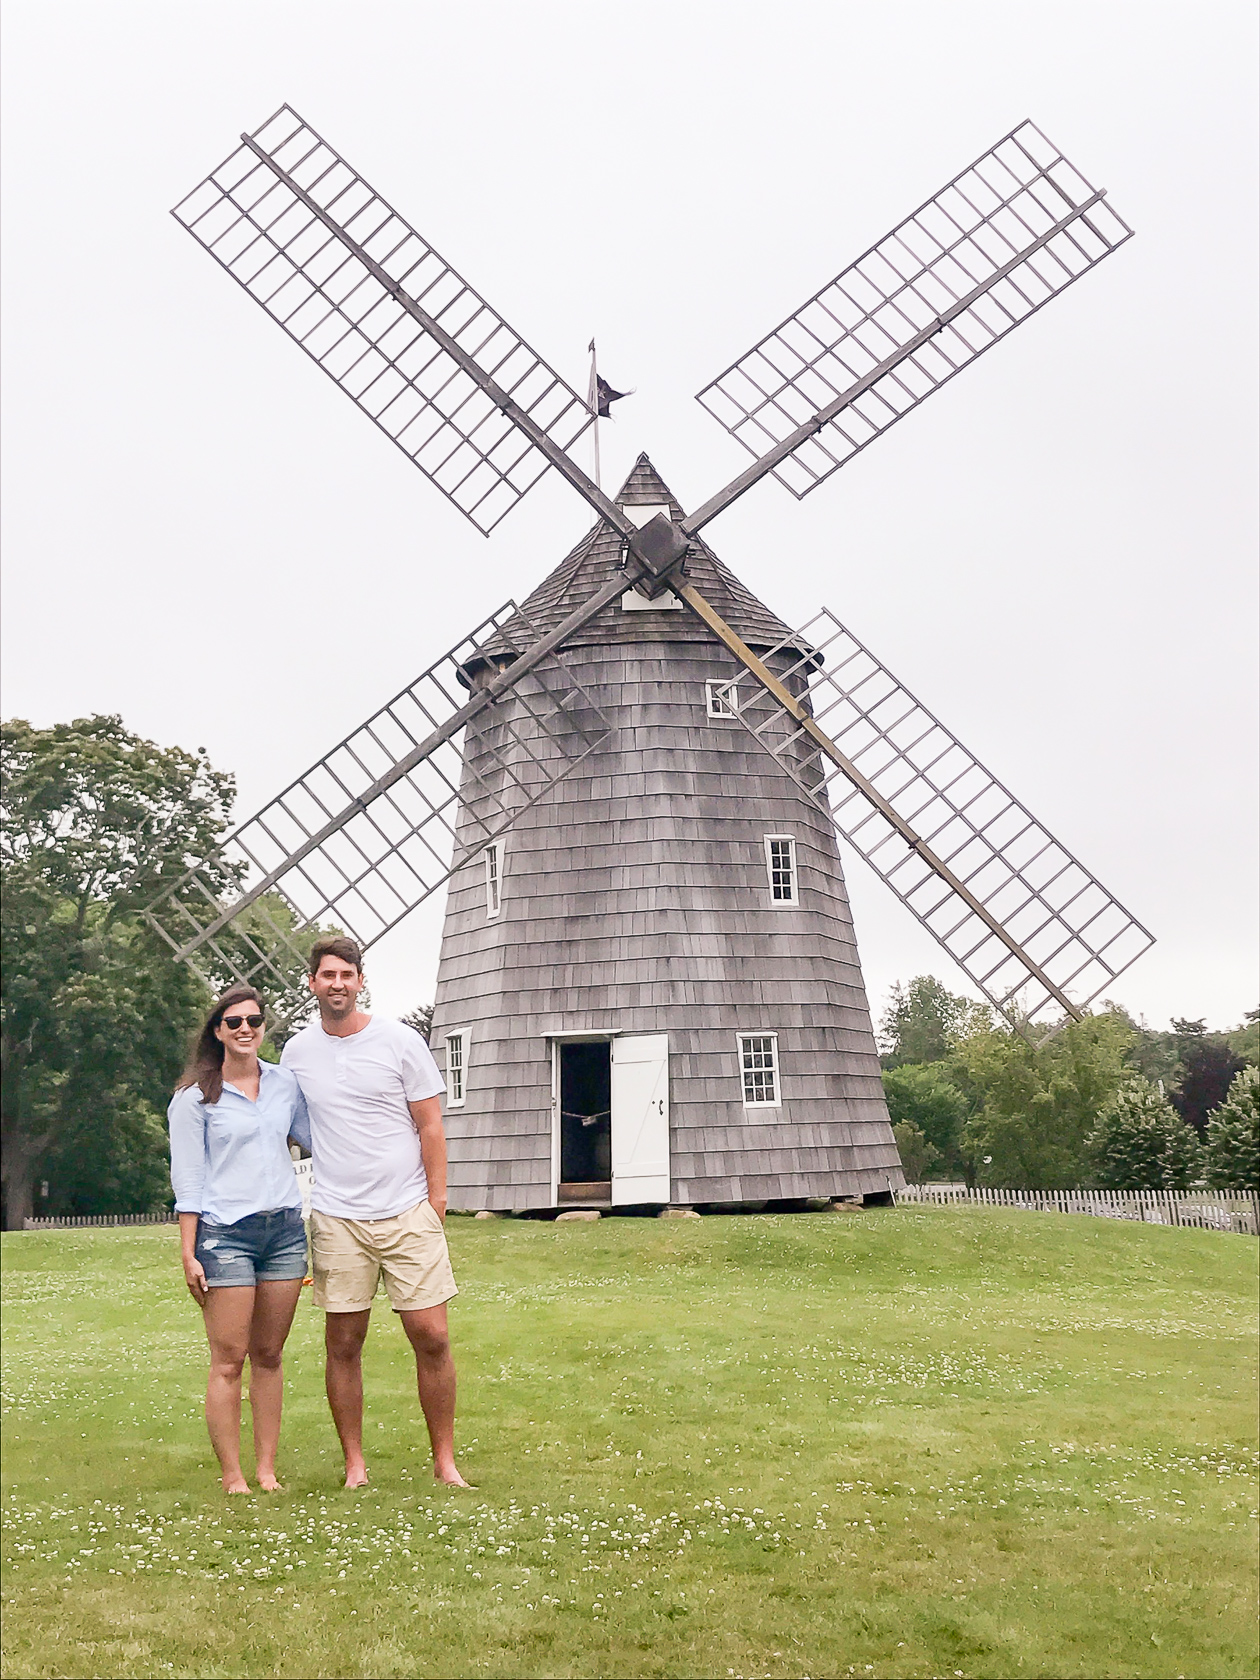 Posing at one of the windmills!